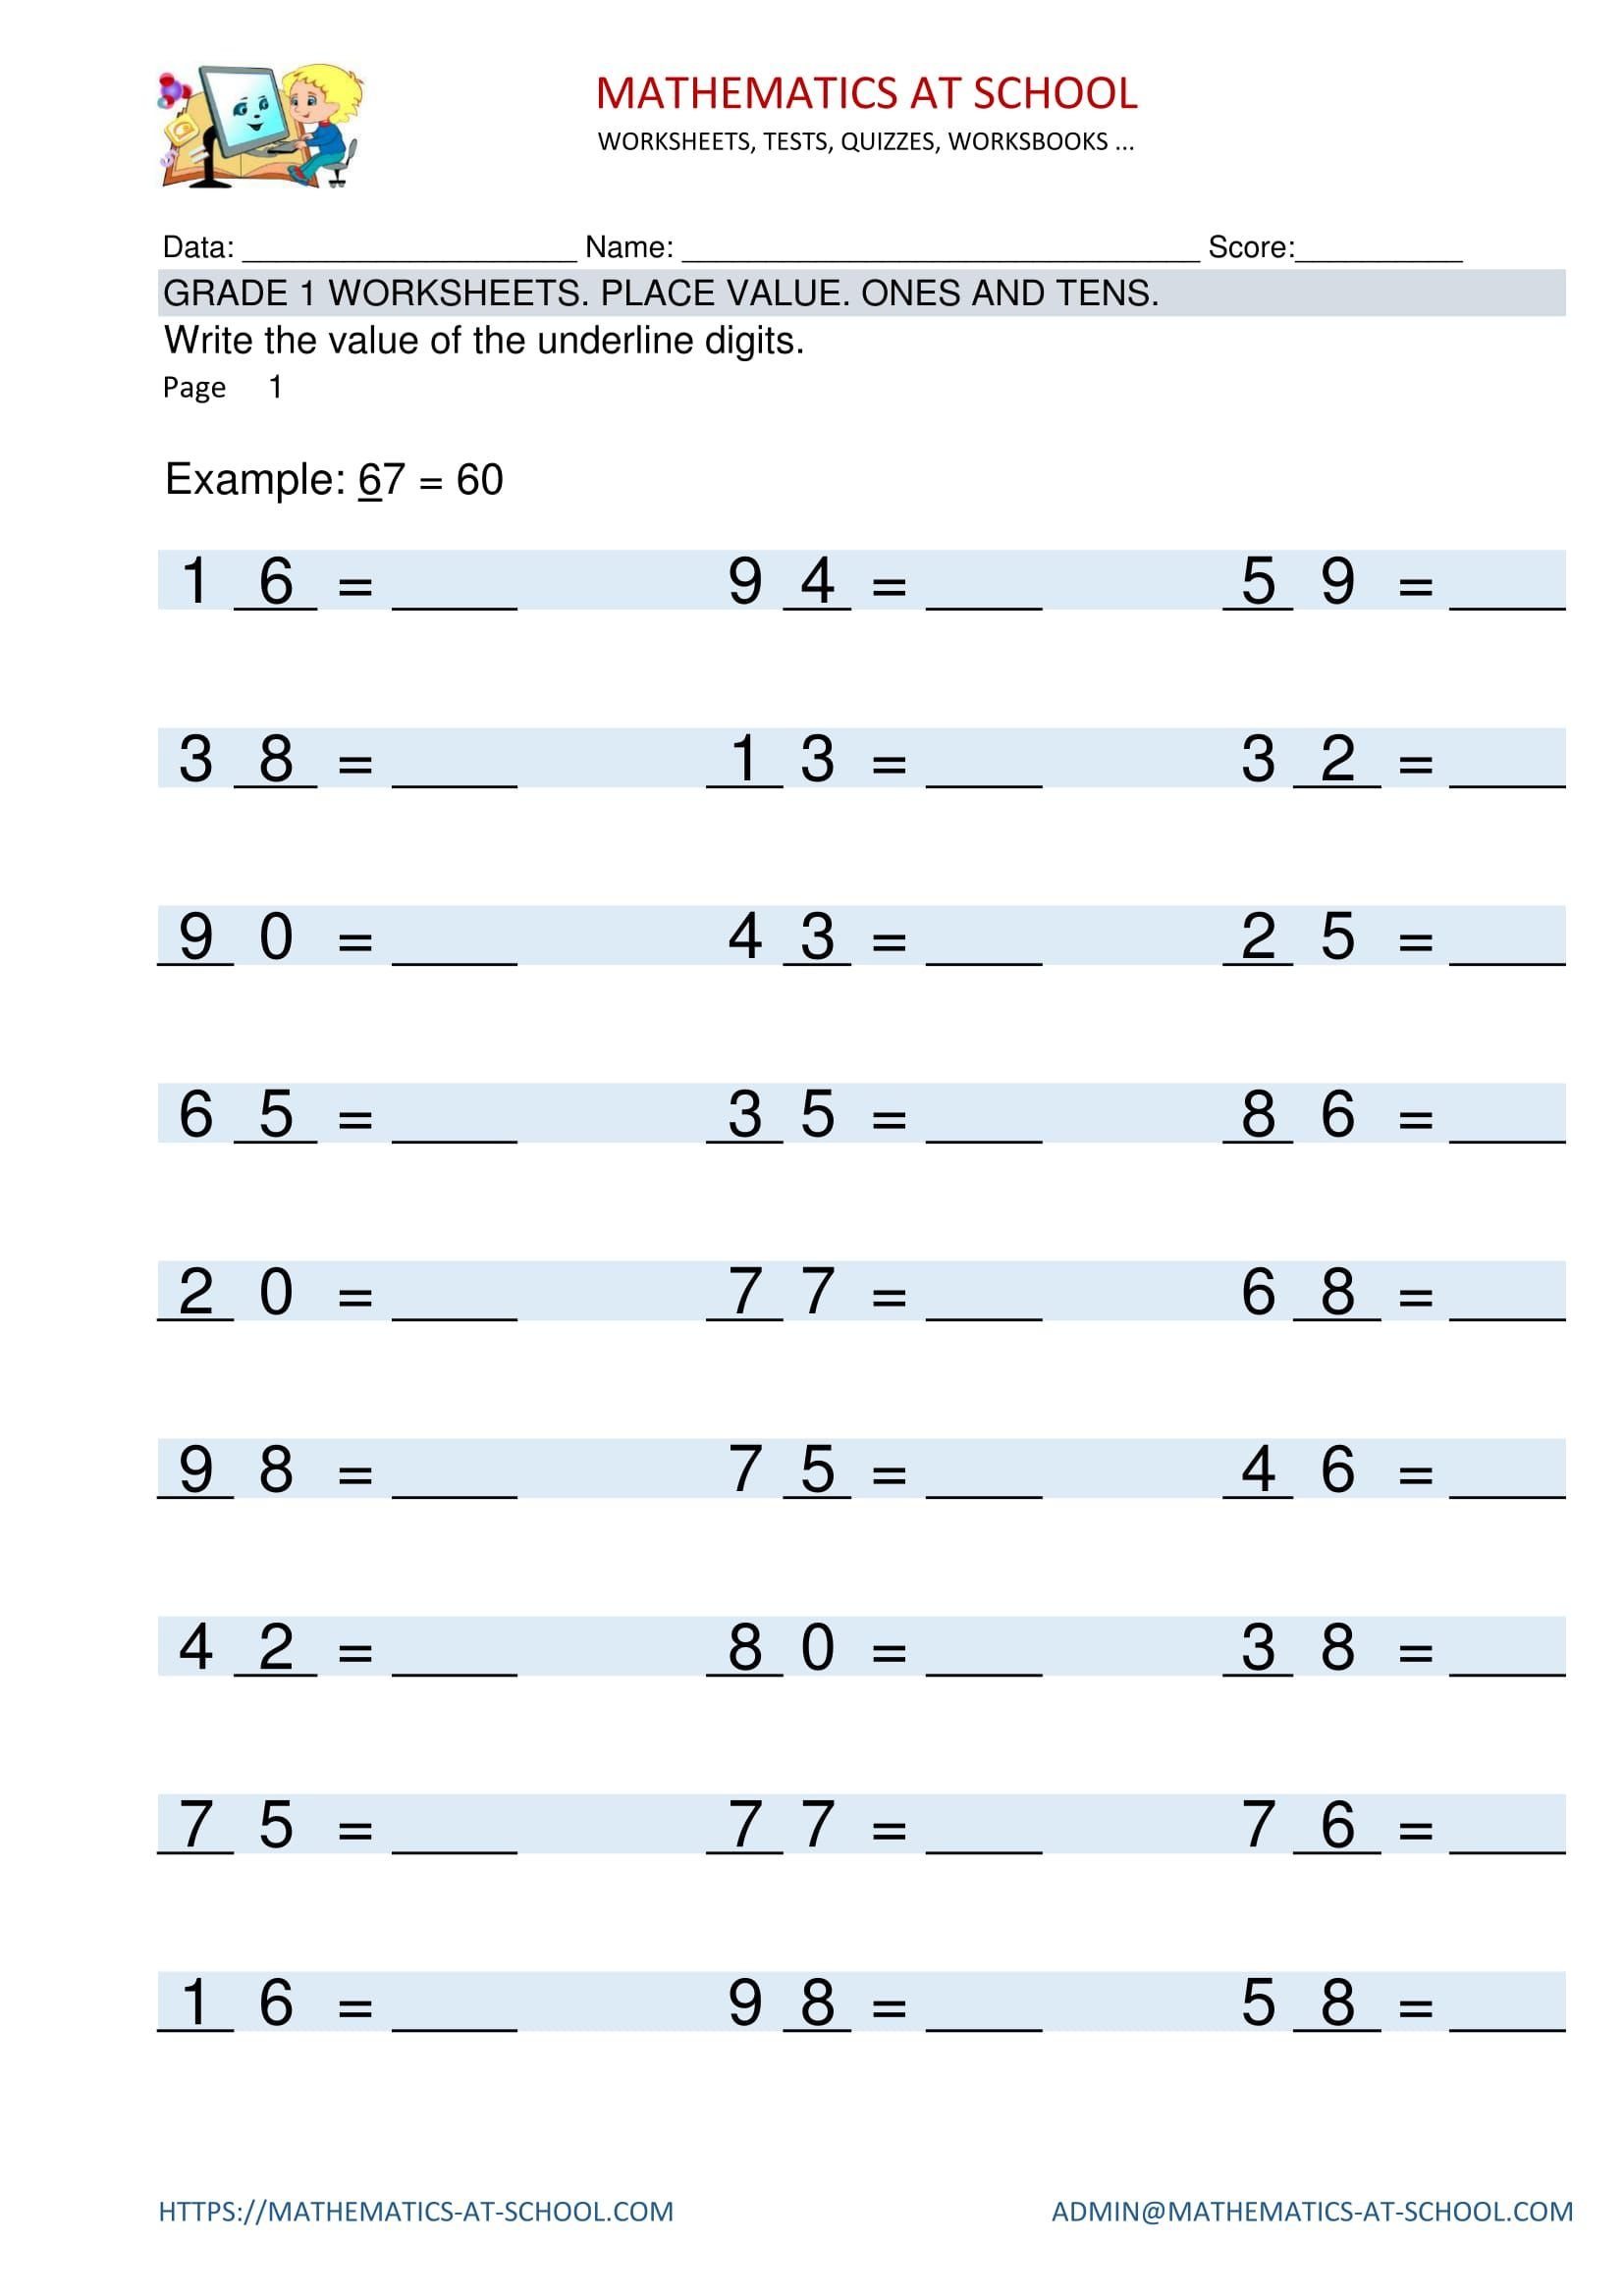 GRADE 1 WORKSHEETS Place value Identifying place value of